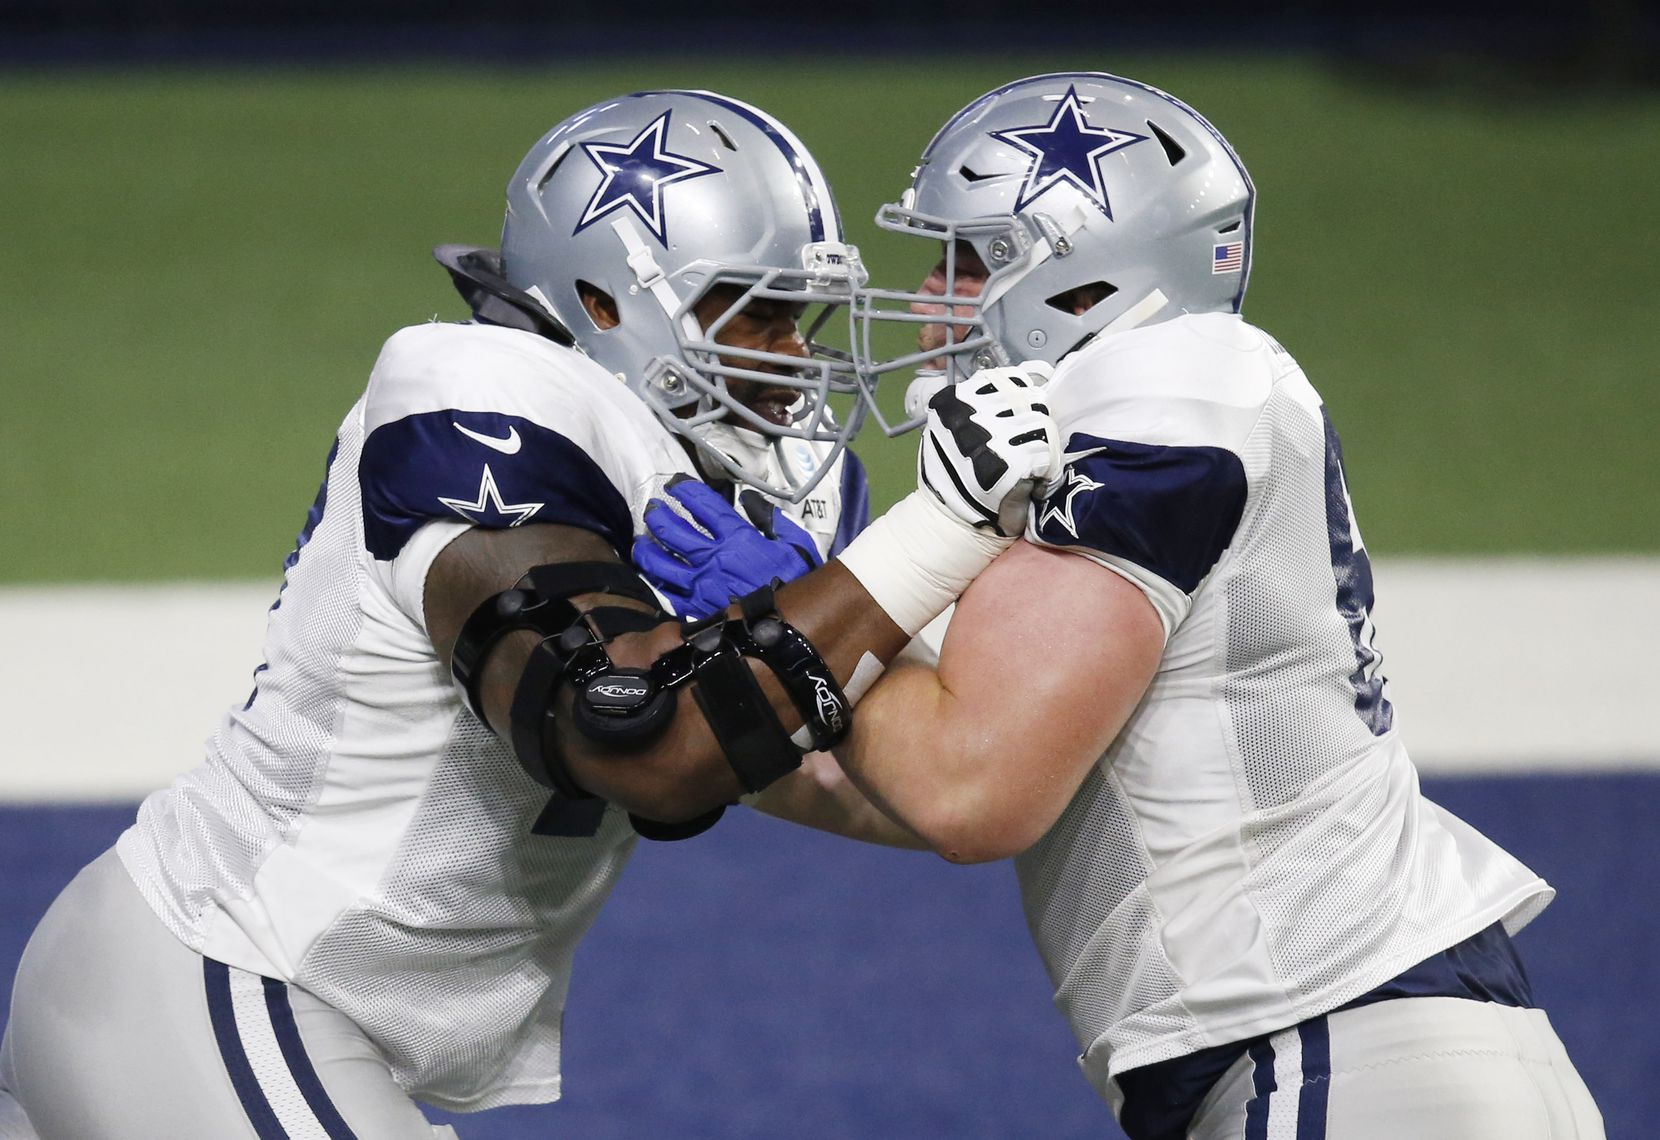 Dallas Cowboys offensive tackle Tyron Smith (77) blocks Dallas Cowboys center Adam Redmond (61) in a drill during training camp at the Dallas Cowboys headquarters at The Star in Frisco, Texas on Thursday, August 27, 2020. (Vernon Bryant/The Dallas Morning News)